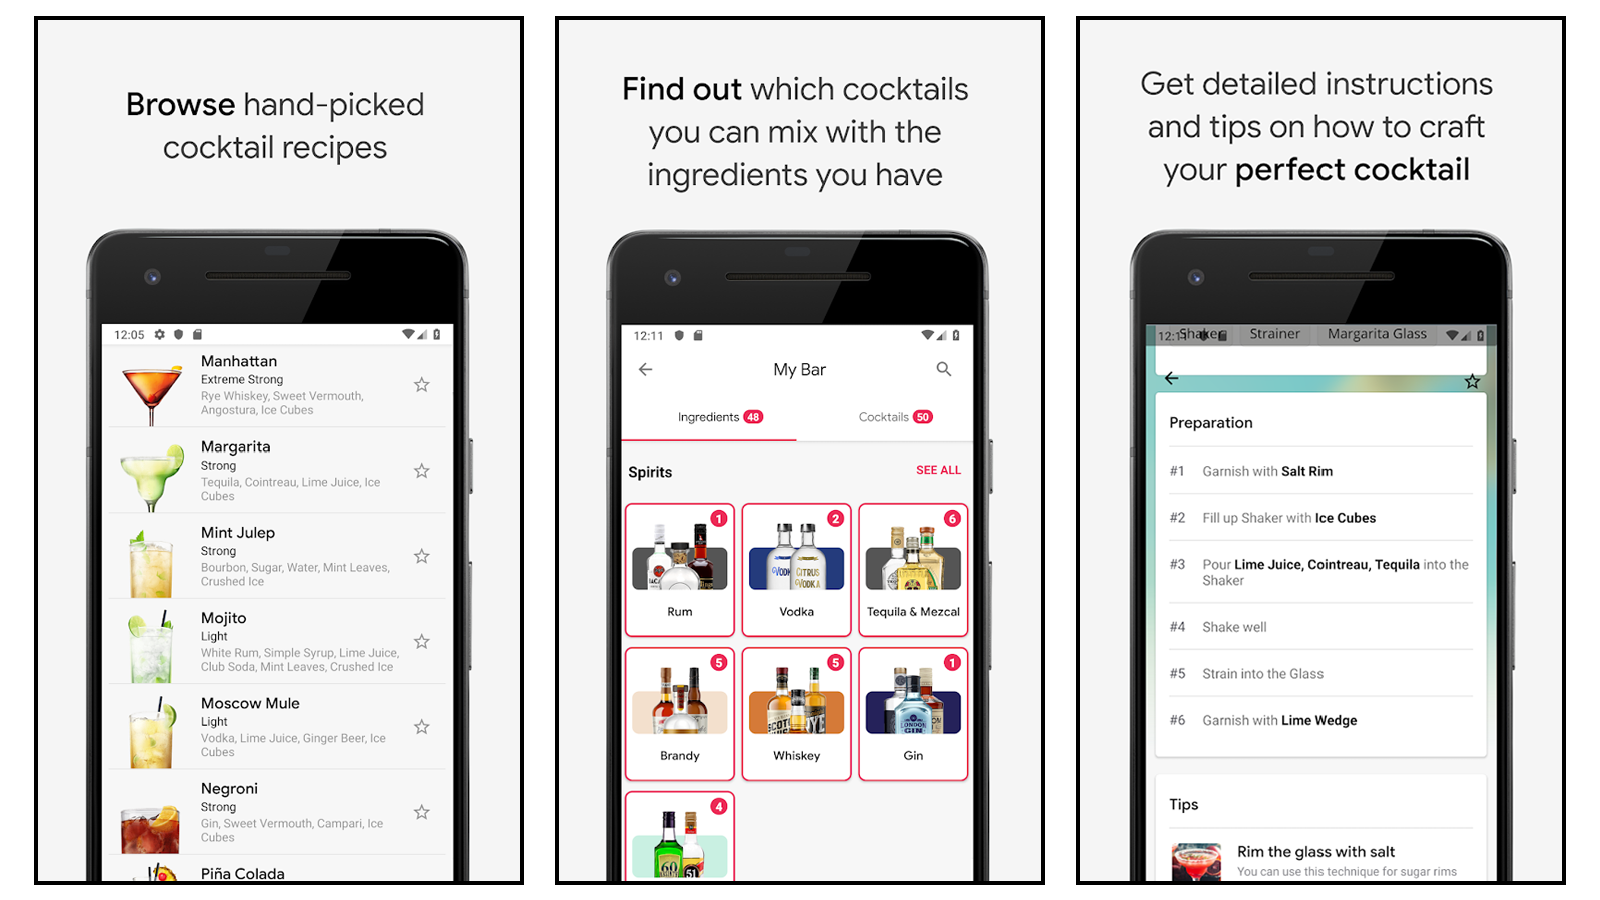 Cocktail Flow app featuring hand-picked recipes, ingredient mixers, and instructions